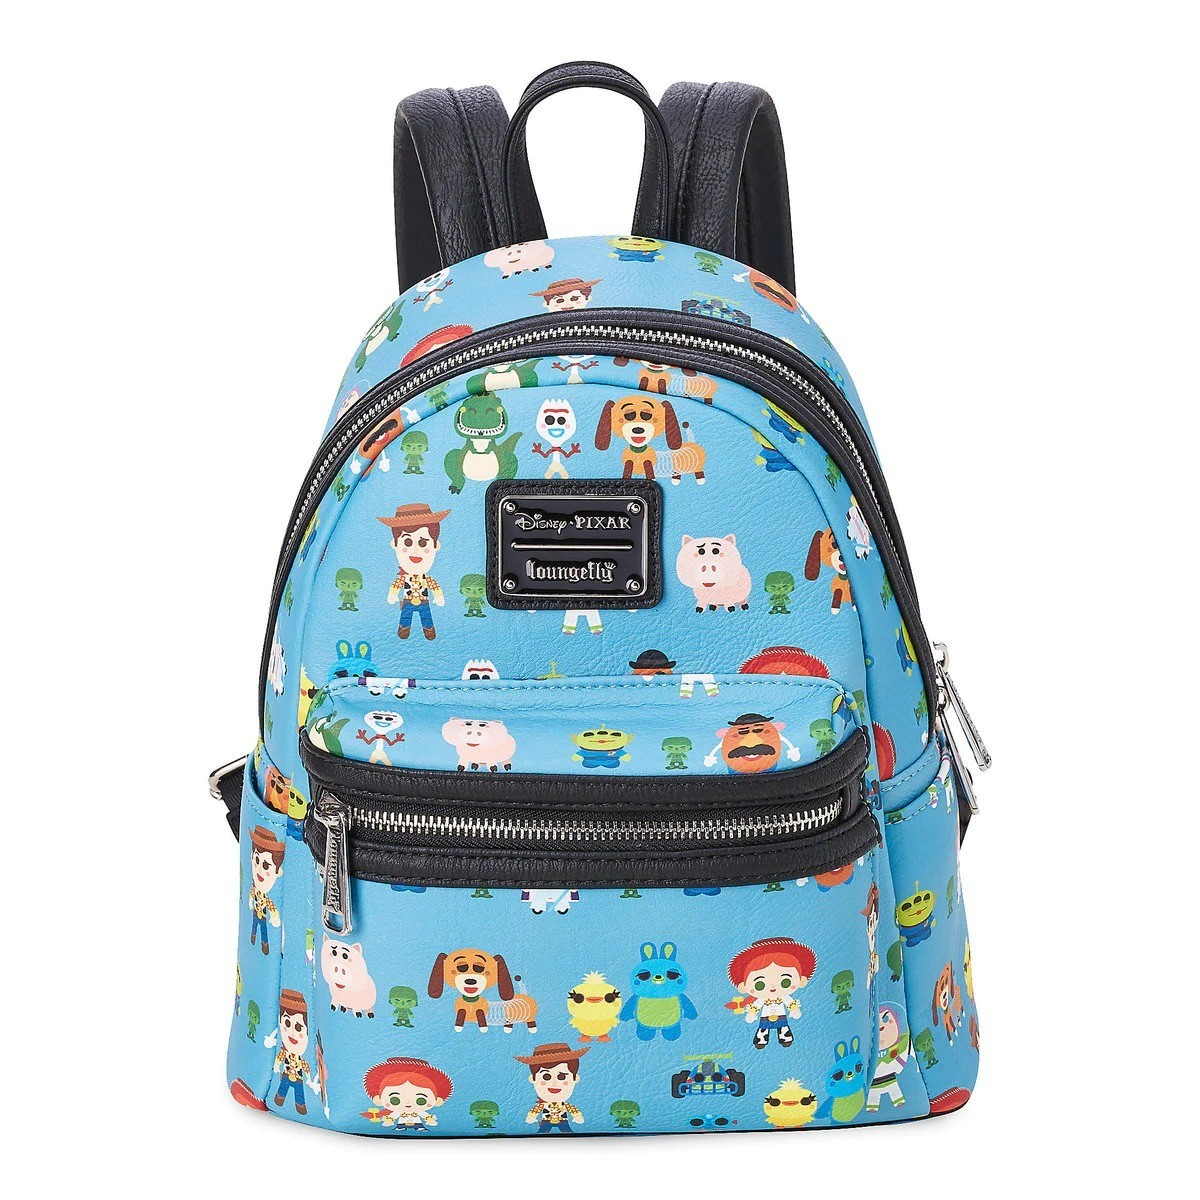 Bolsa Mochila Toy Story 4 Exclusiva